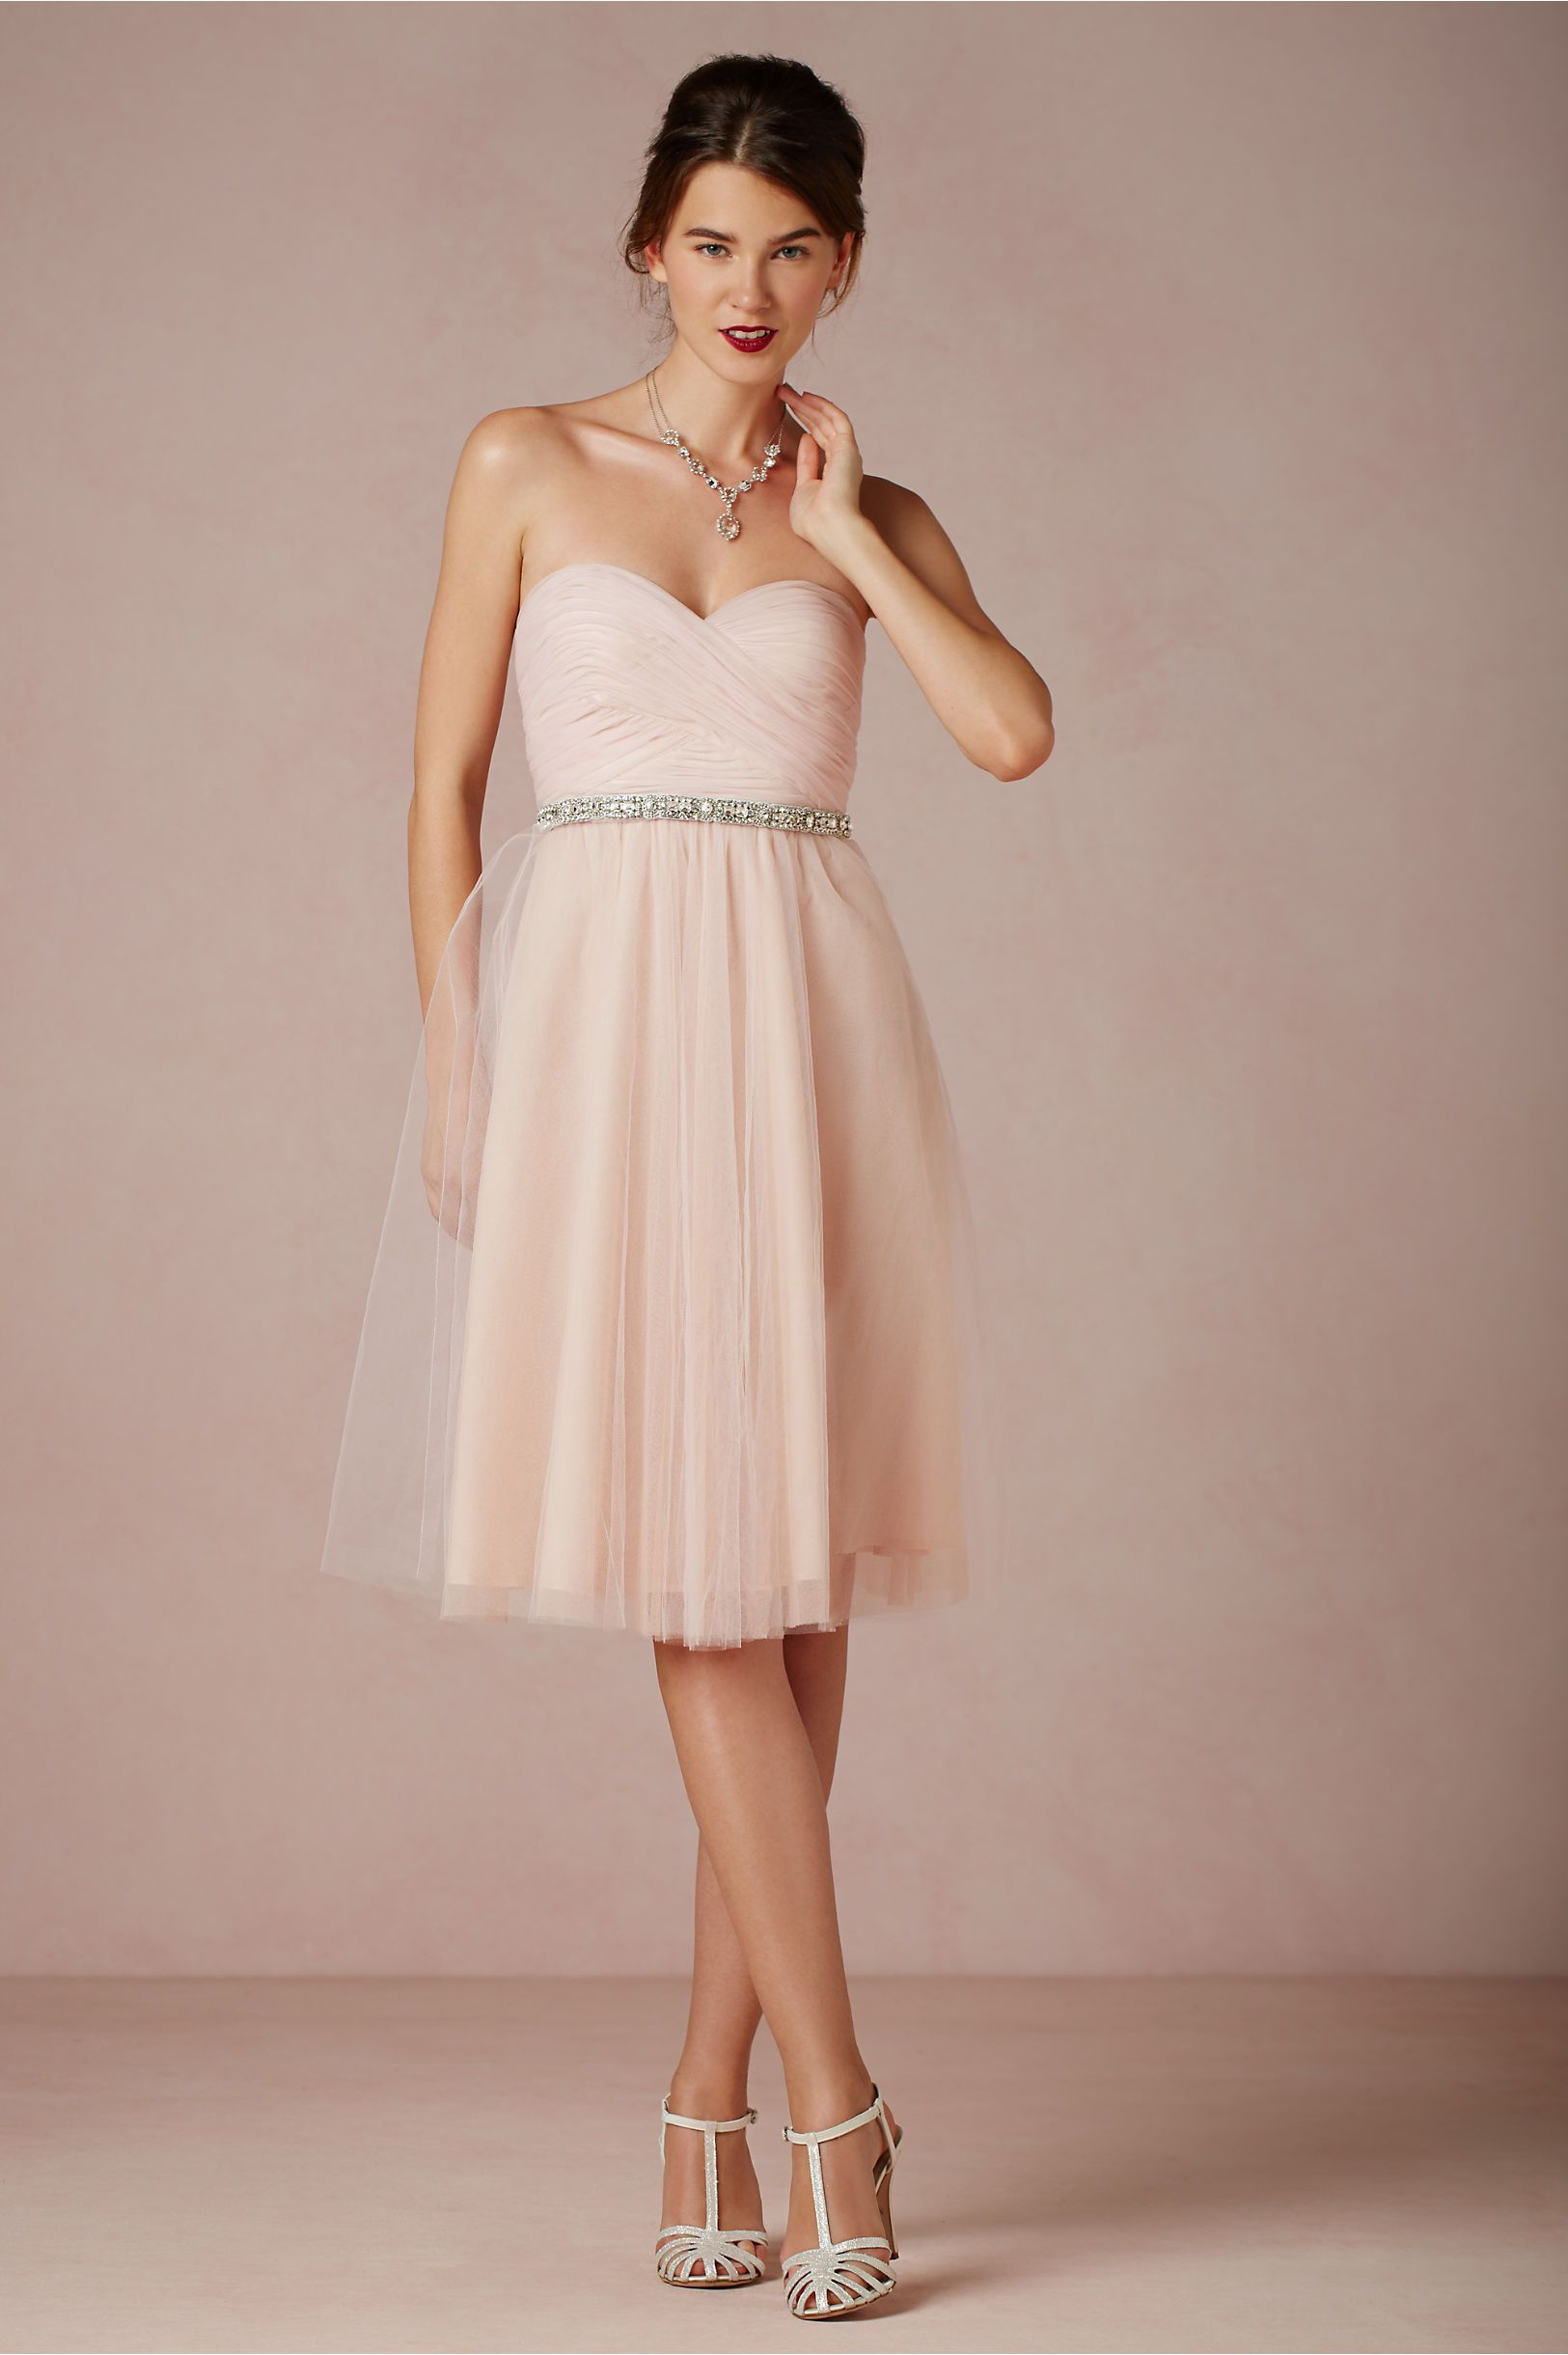 Choreography dress from bhldn bridesmaid hair muses gorgeous blush bridesmaid dress with a sparkle belt for extra added glitz i love this dress because it isnt bridesmaid ey and can definitely be worn ombrellifo Images